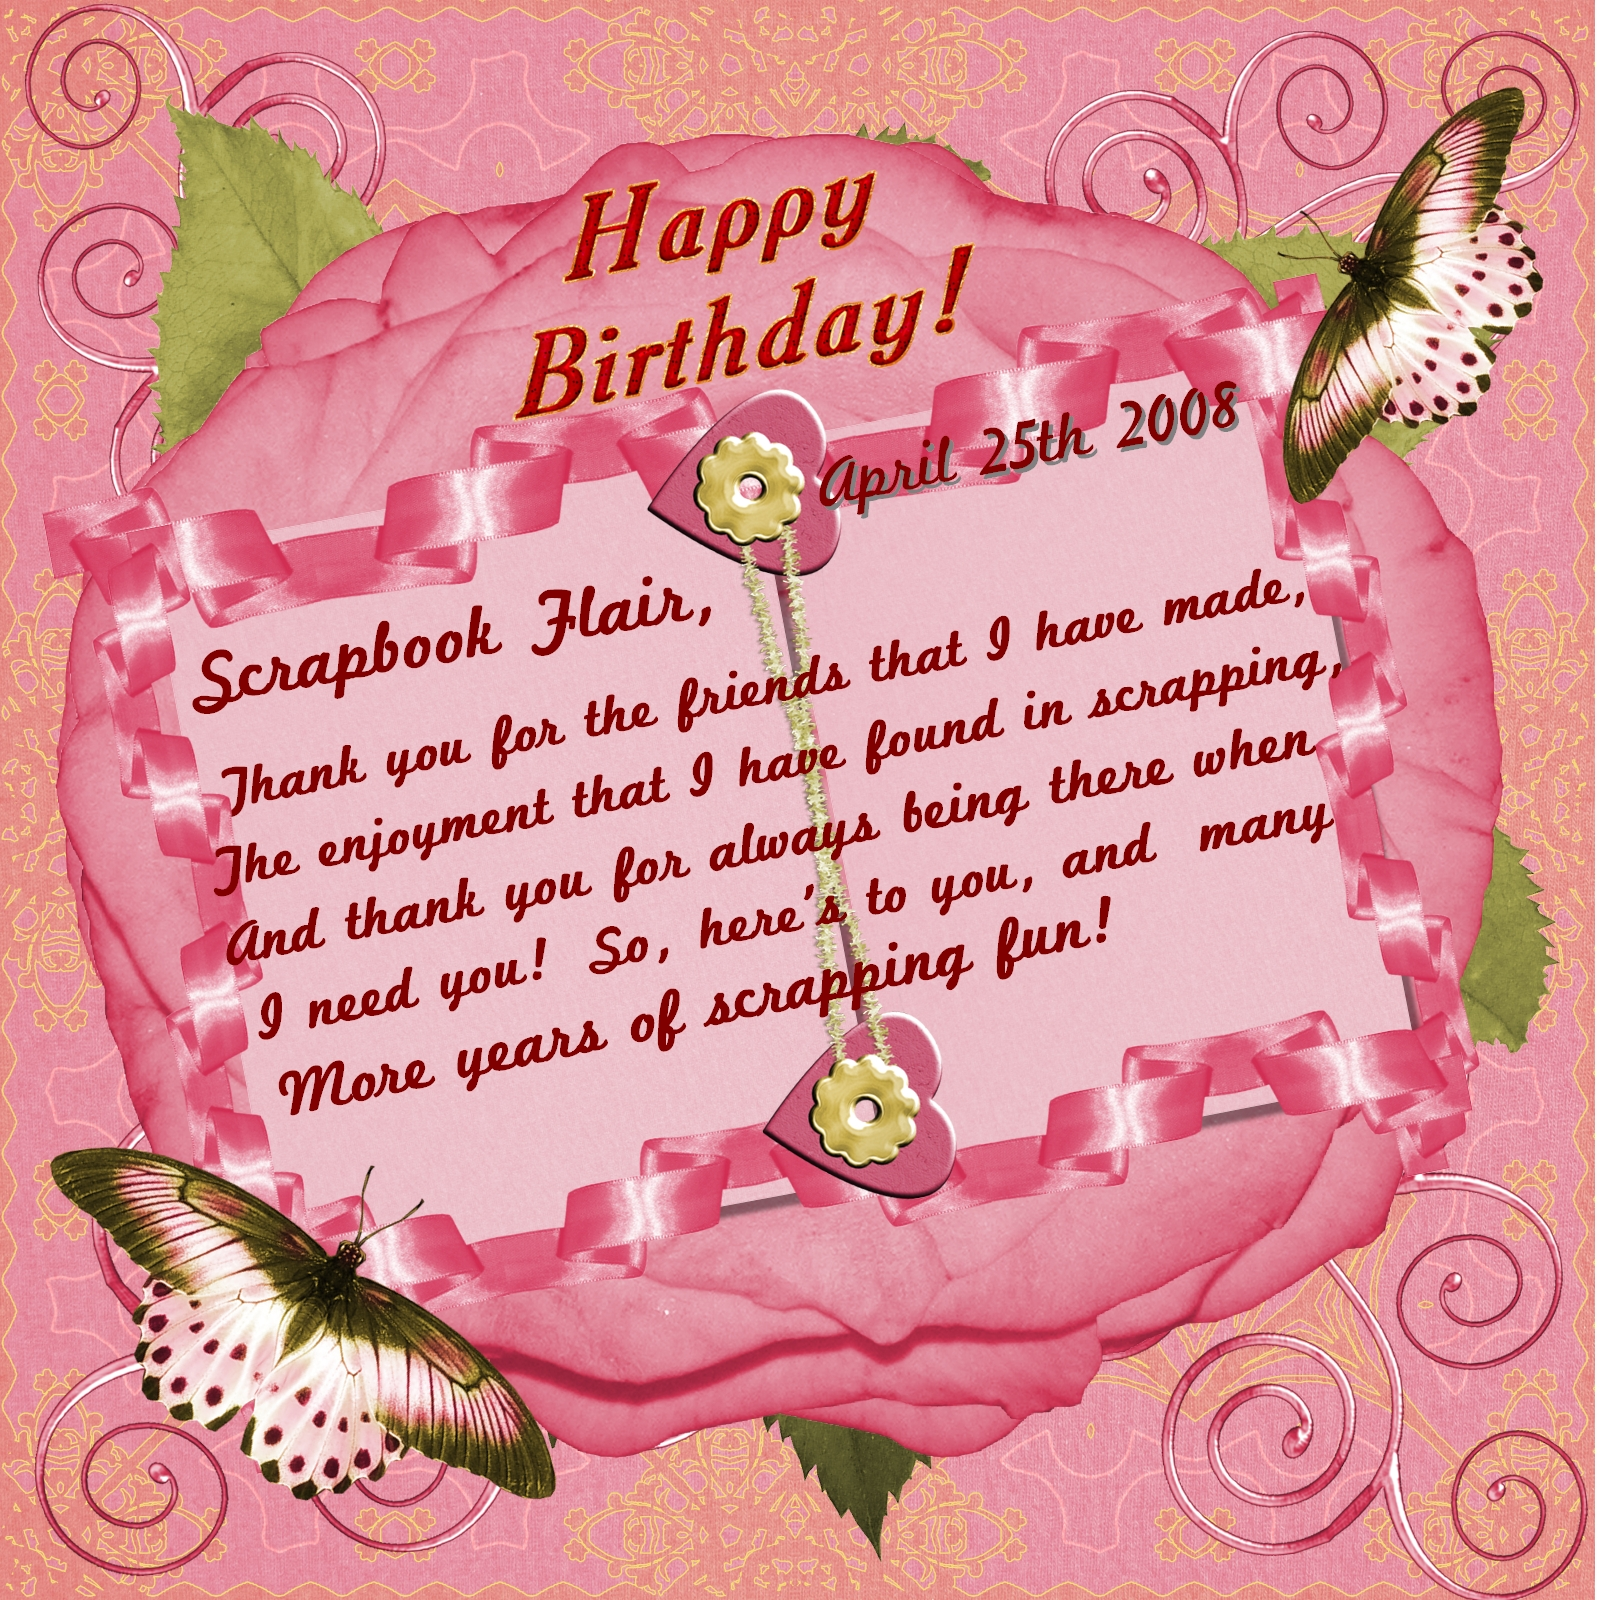 Happy Birthday Scrapbook Flair Digital Scrapbooking At Scrapbook Flair